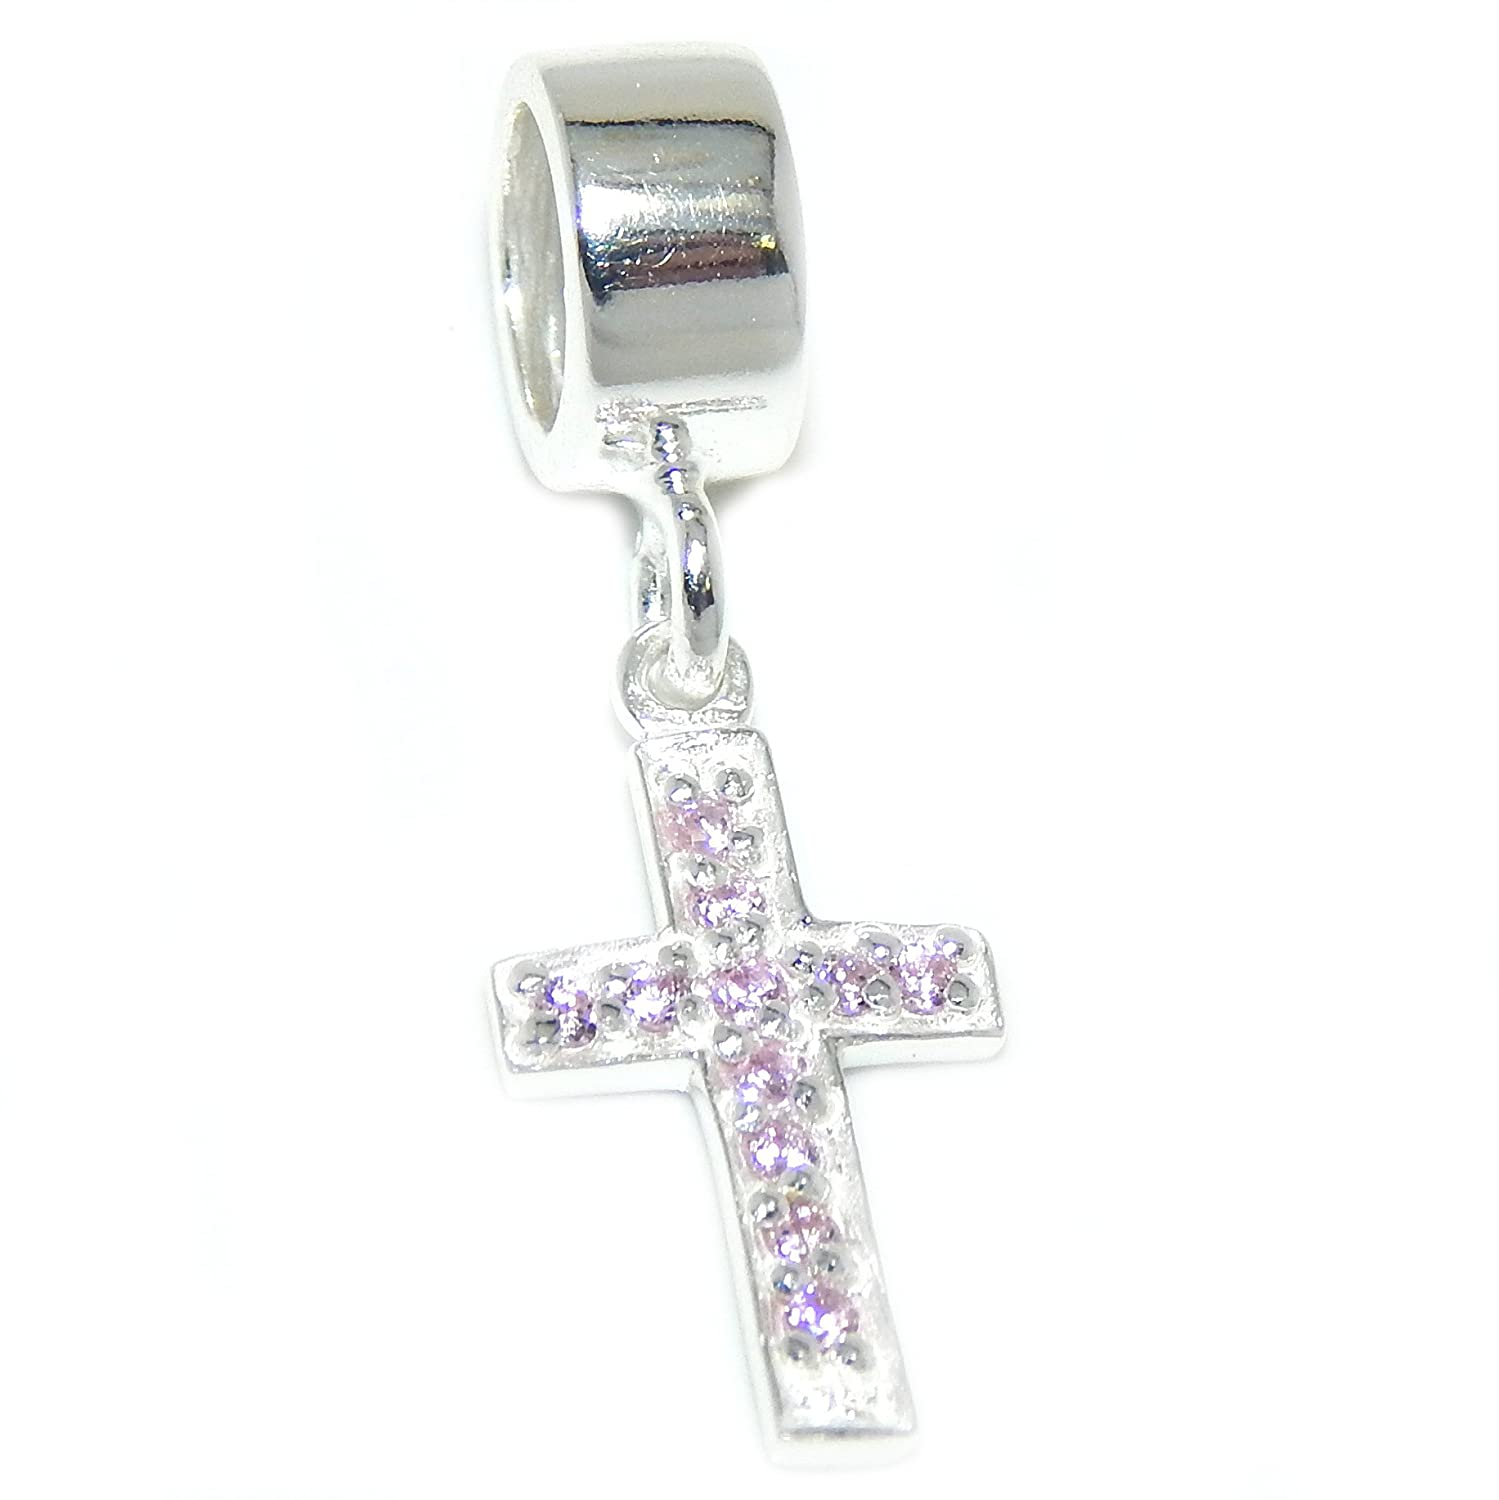 ICYROSE Solid 925 Sterling Silver Dangling Cross with Pink Crystals Charm Bead